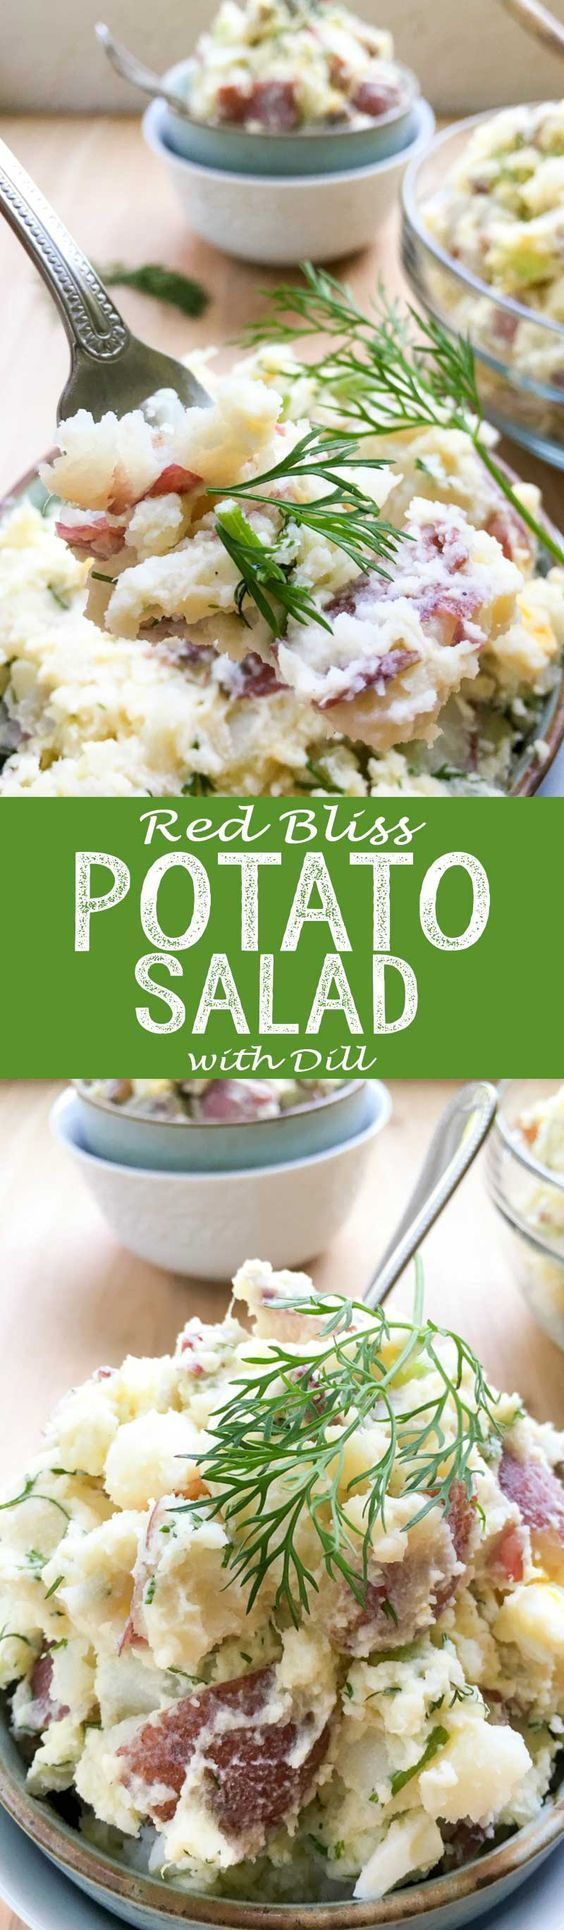 Red Bliss Potato Salad with Dill has crisp celery, onion, Dijon mustard and eggs, giving it a satisfying crunch and flavor. This classic and cool Summer salad feeds a crowd, making it perfect for BBQs, potlucks or a recipe to last during the week. Red Bliss Potato Salad with Dill - Eazy Peazy Mealz